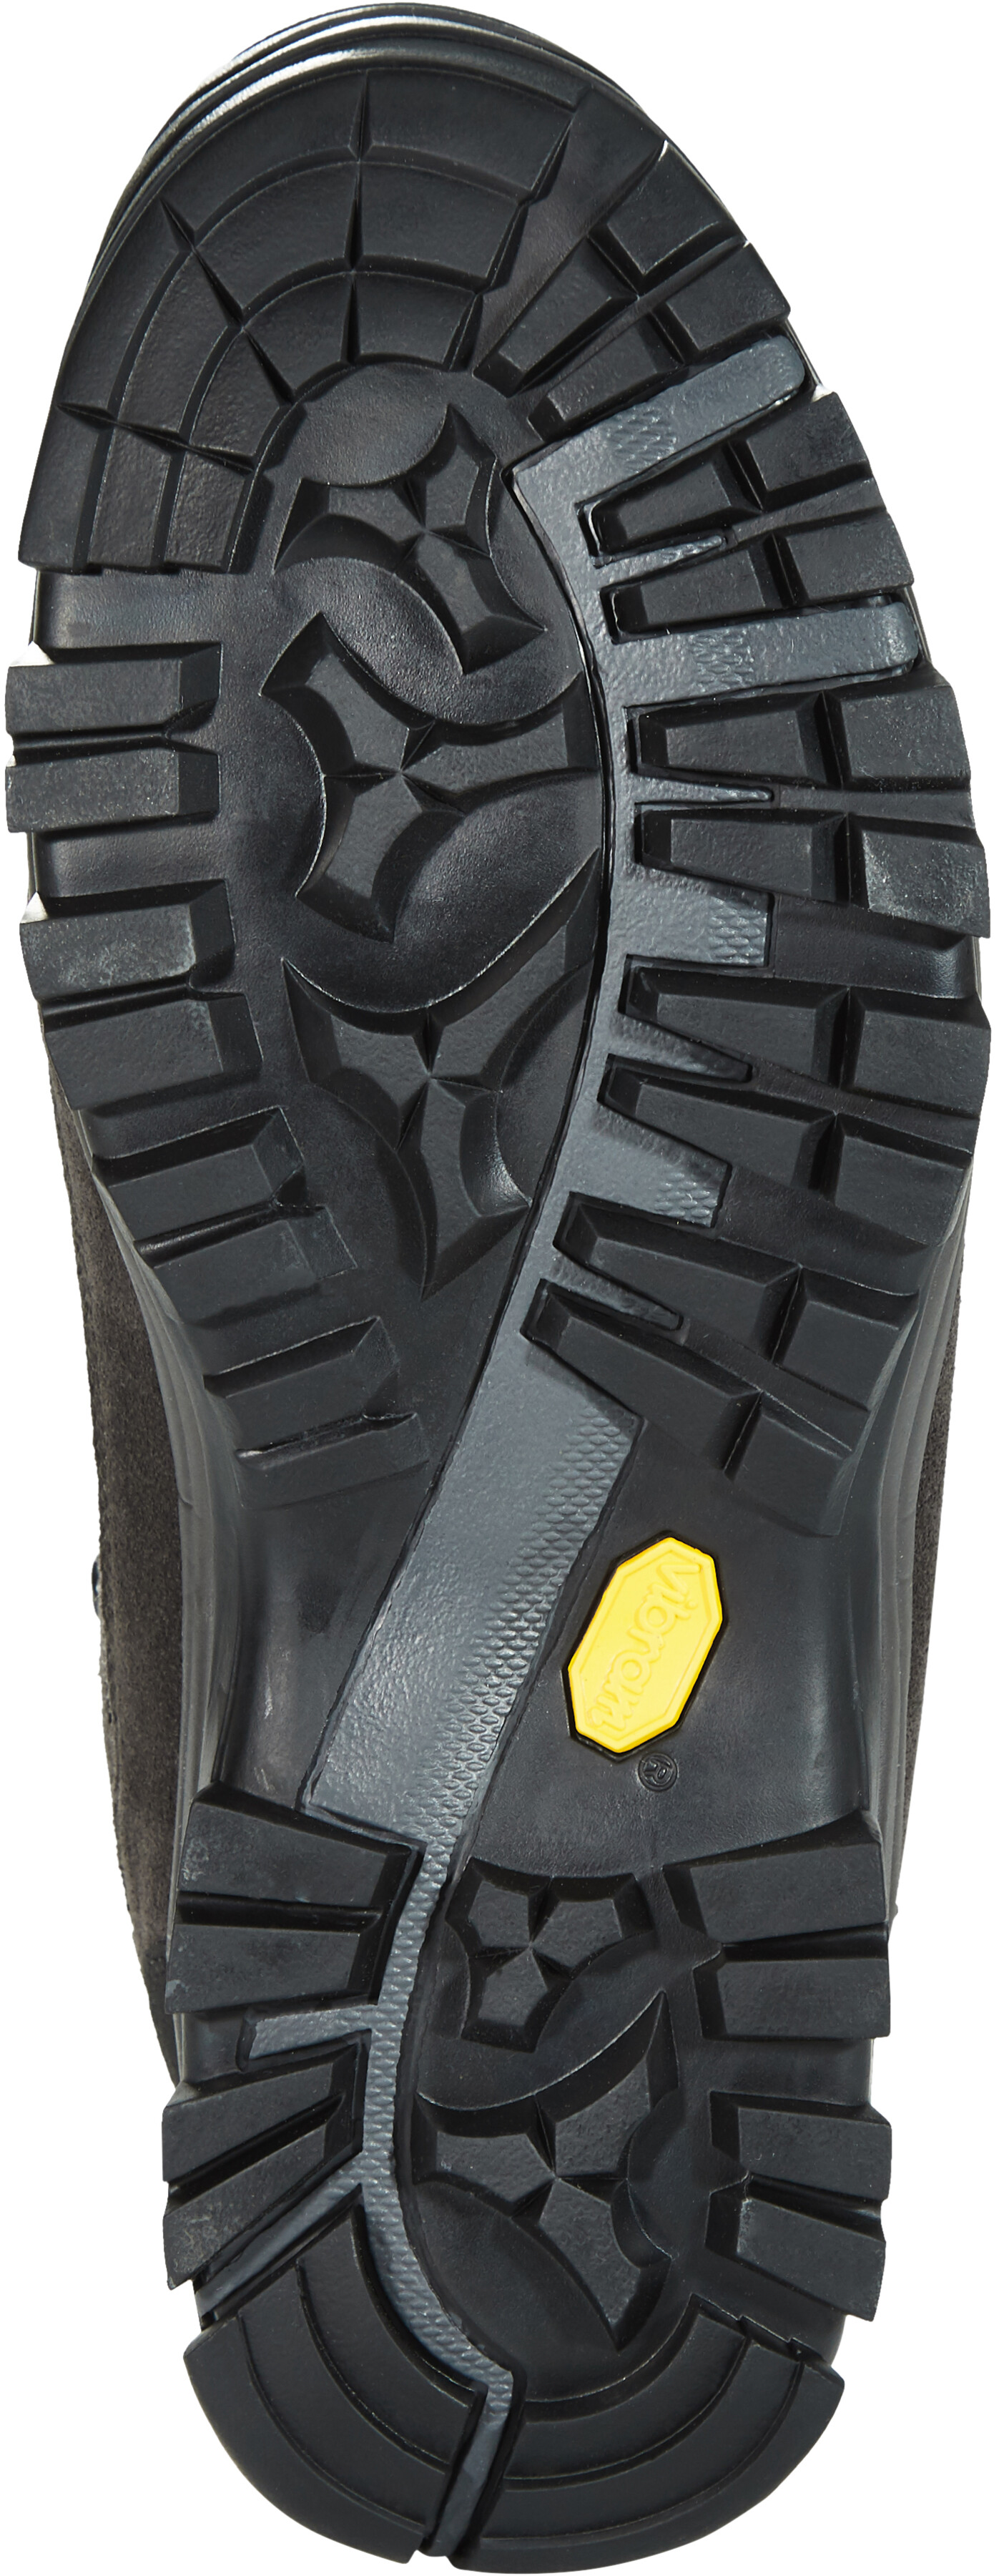 jack wolfskin all terrain 8 texapore shoes men grey at. Black Bedroom Furniture Sets. Home Design Ideas